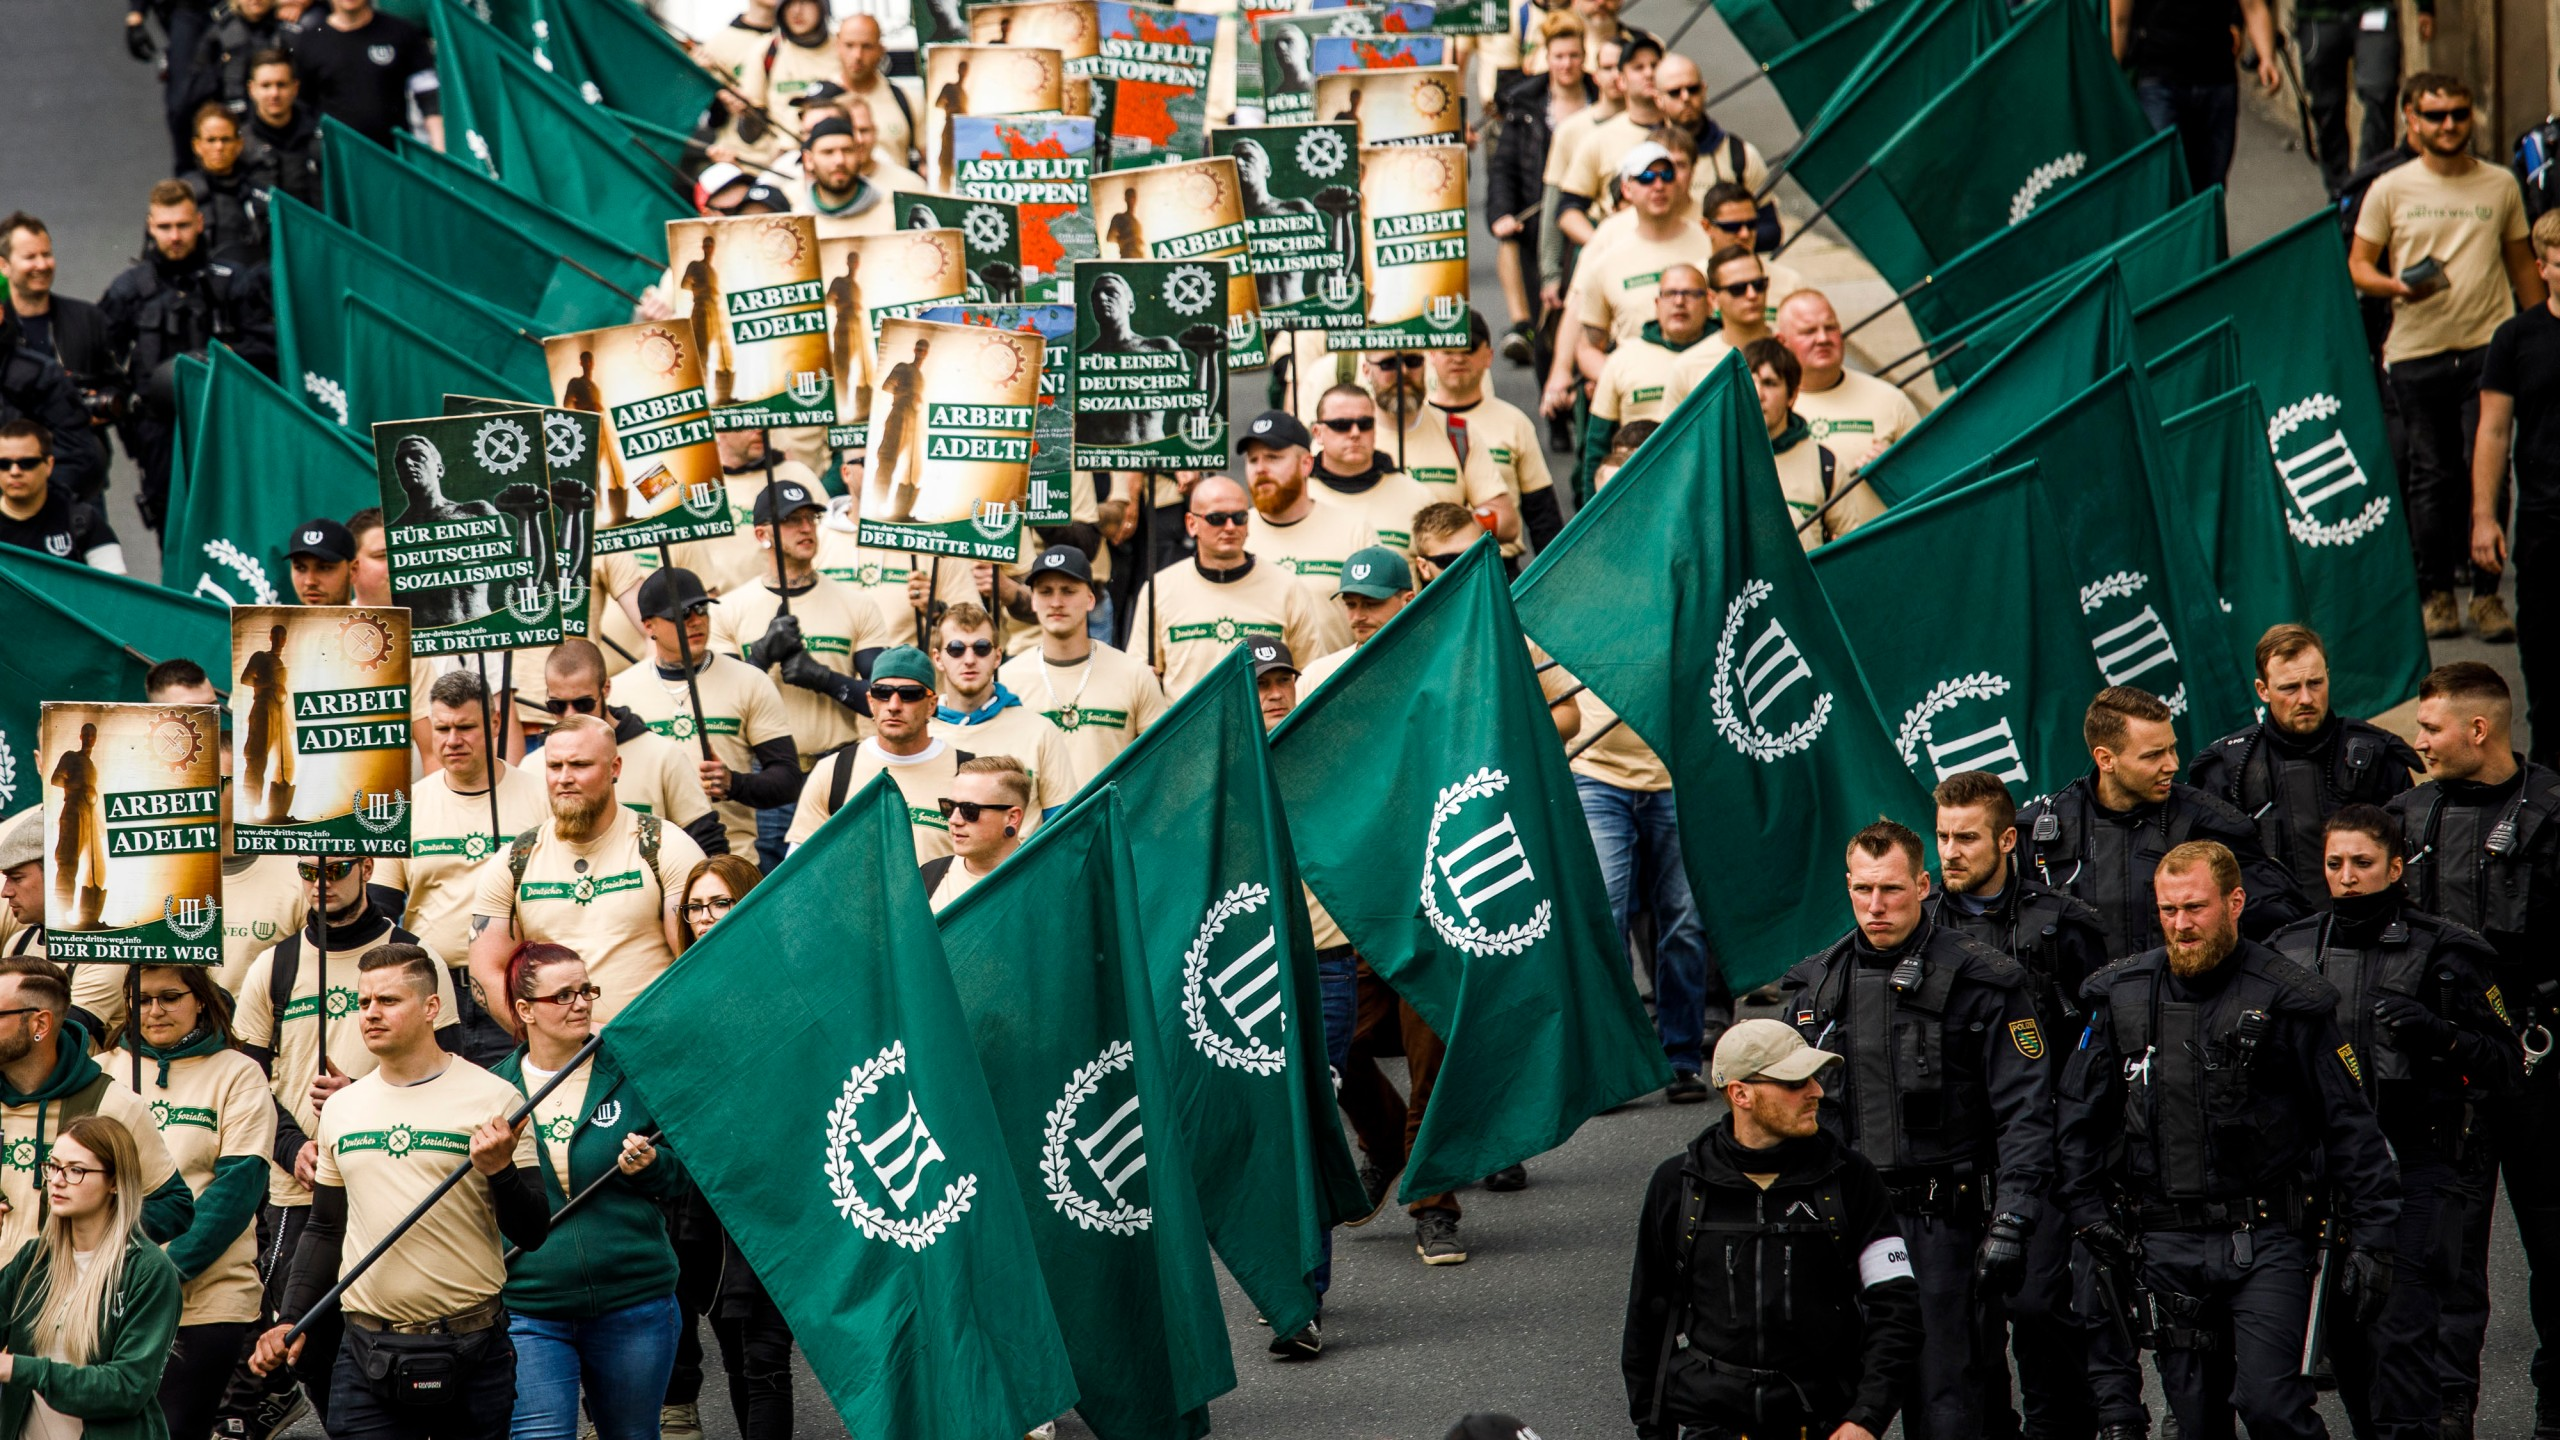 Supporters of the far-right The Third Way (Der Dritte Weg) movement march on May Day on May 1, 2019, in Plauen, Germany. (Credit: Carsten Koall/Getty Images)